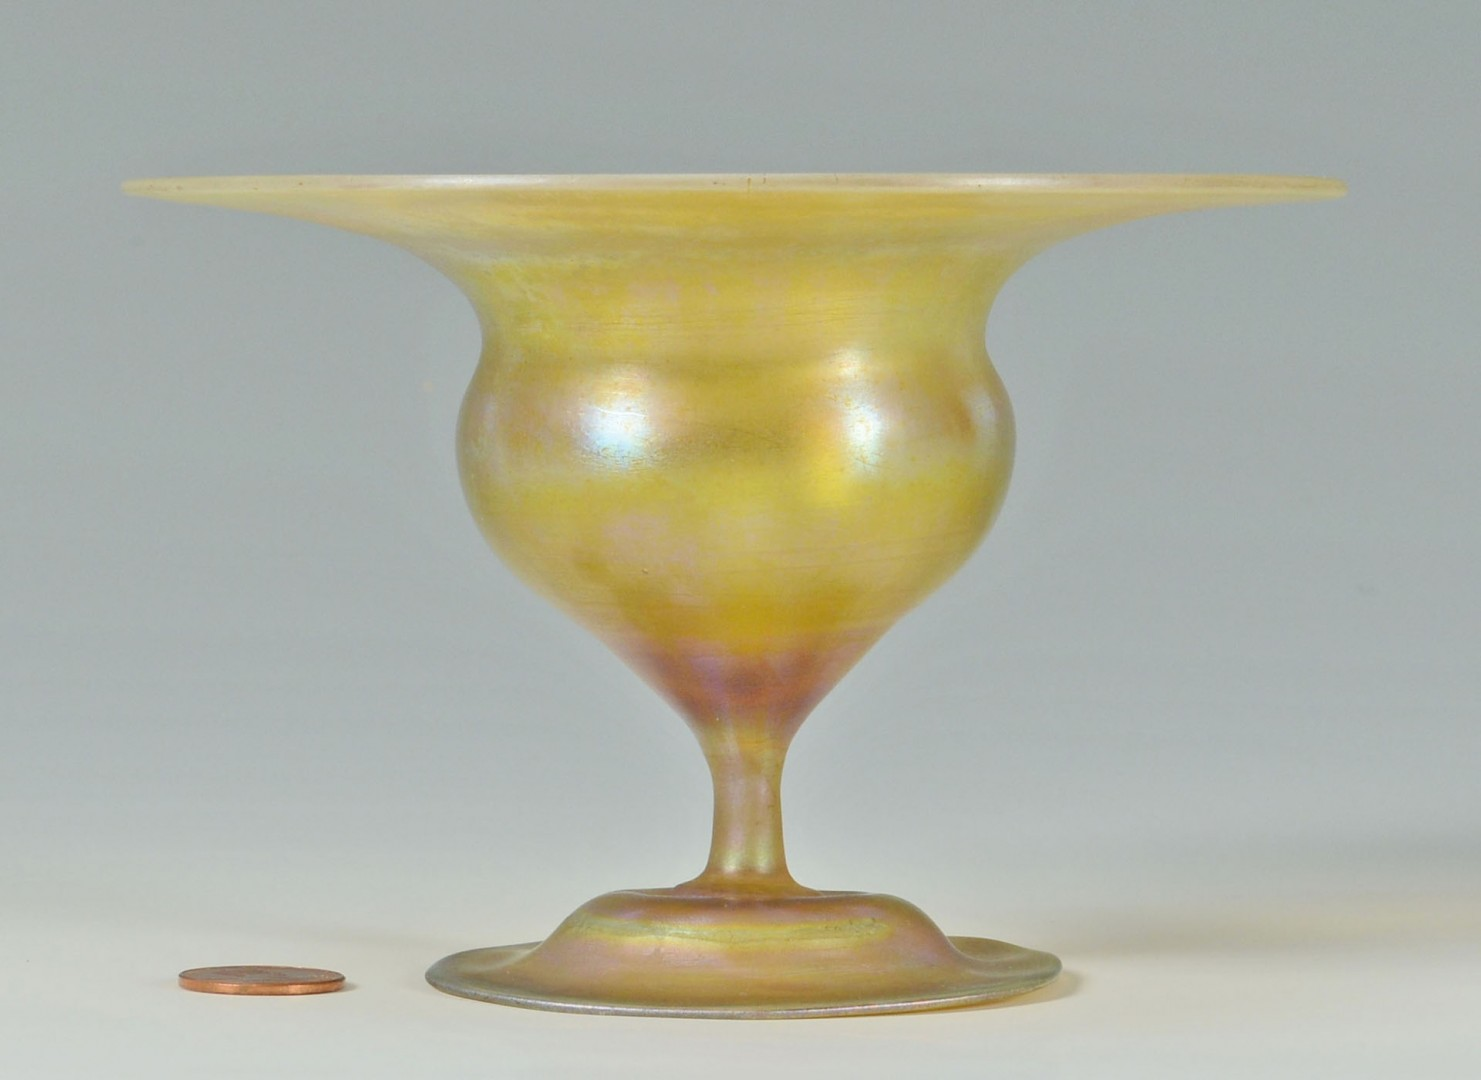 Lot 162: Signed Tiffany Favrile Glass Compote